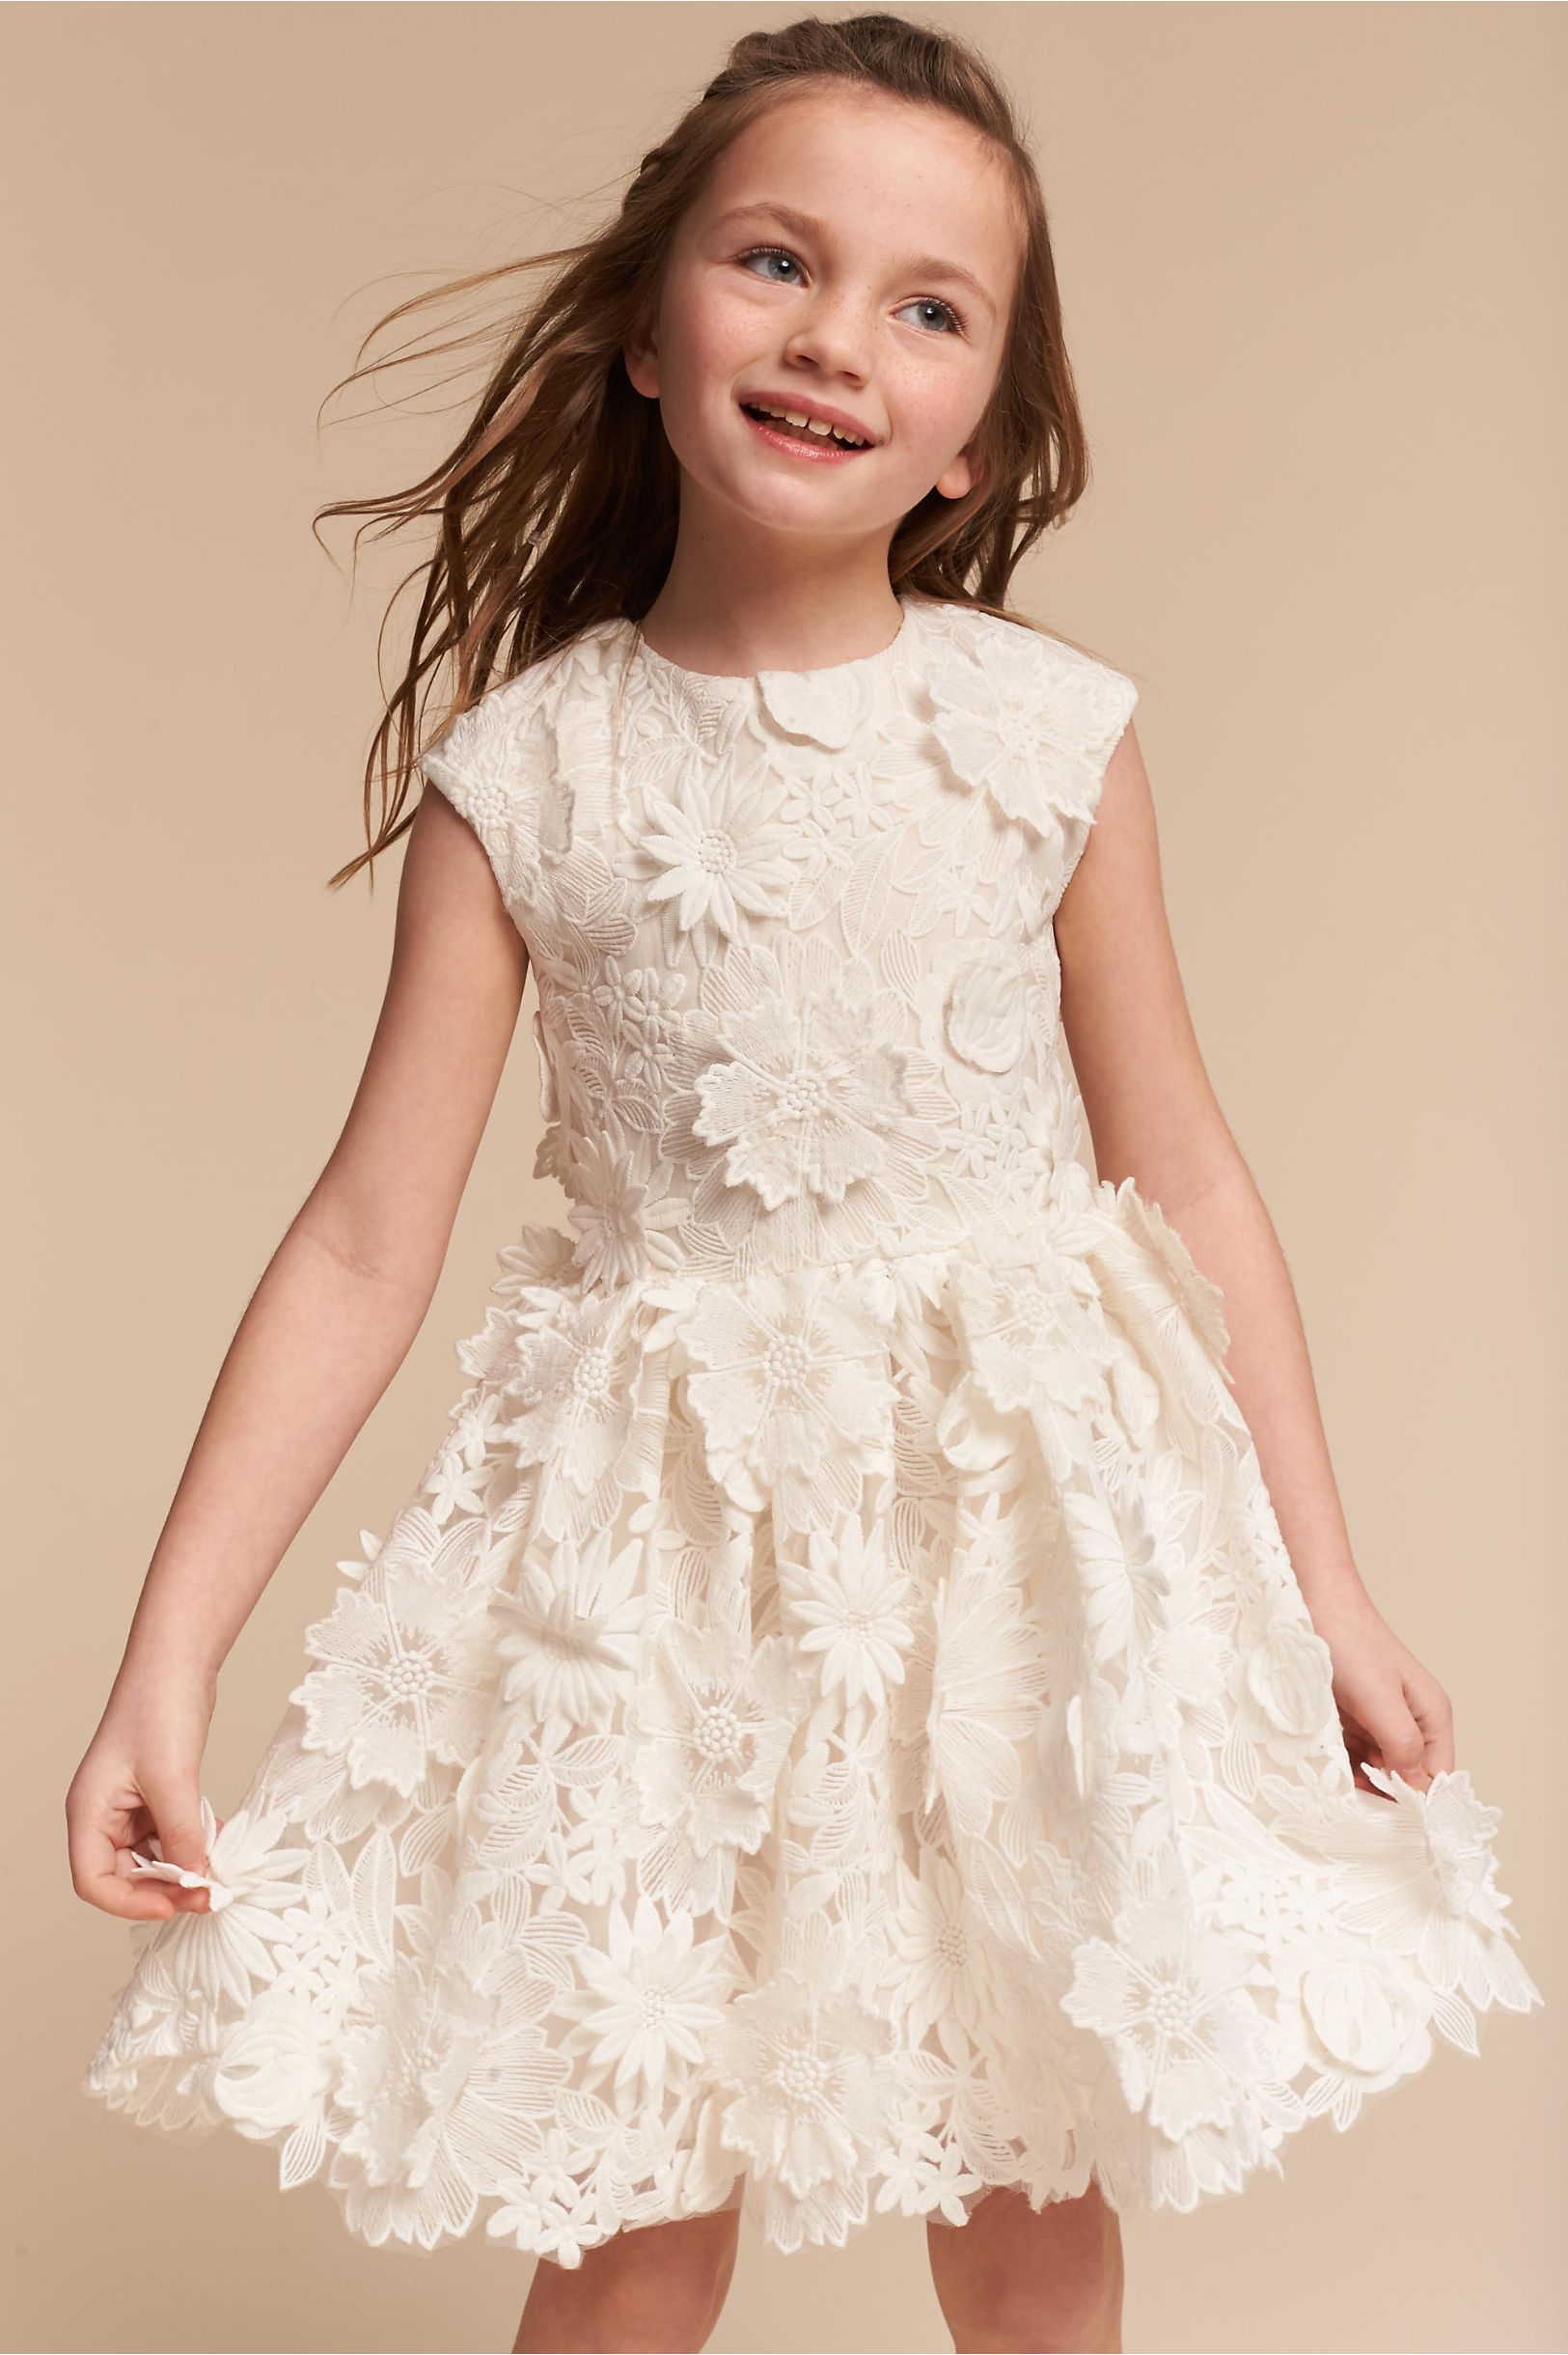 Wedding ideas shop these cute flower girl dresses inside weddings white flower girl dress with flower appliques from bhldn ombrellifo Image collections